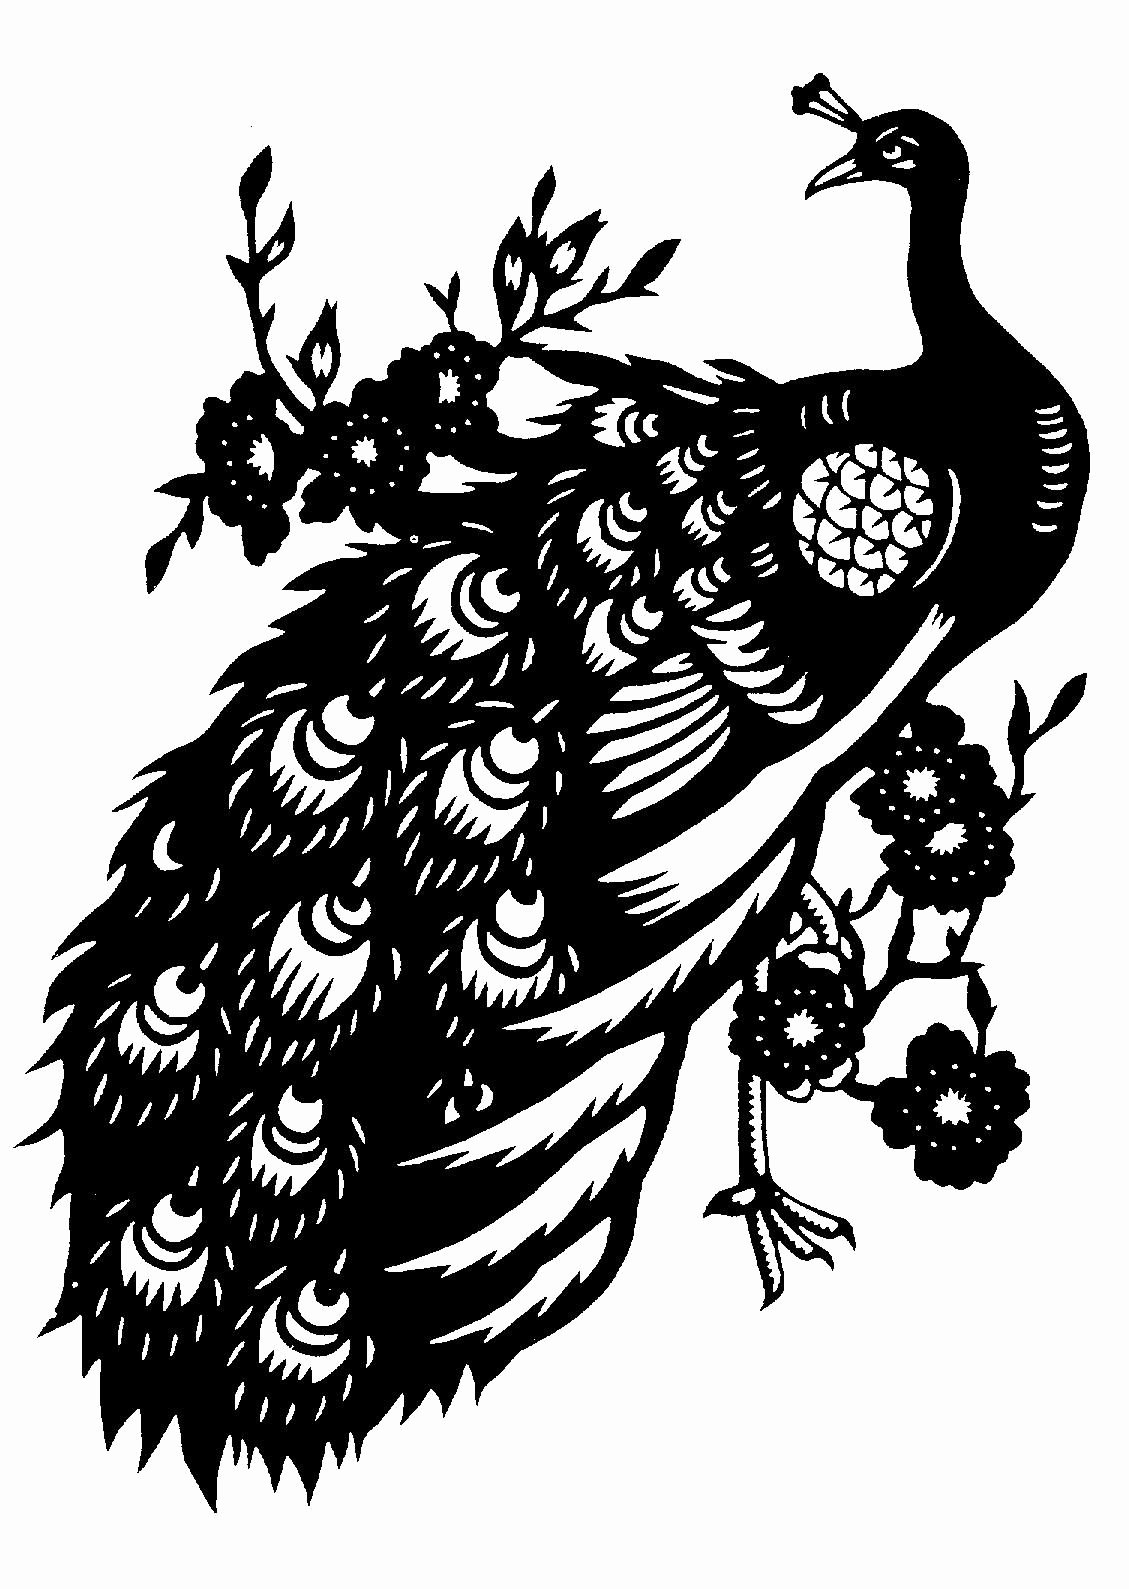 Chinese Paper Cutting Templates Awesome Paper Cutting Designs